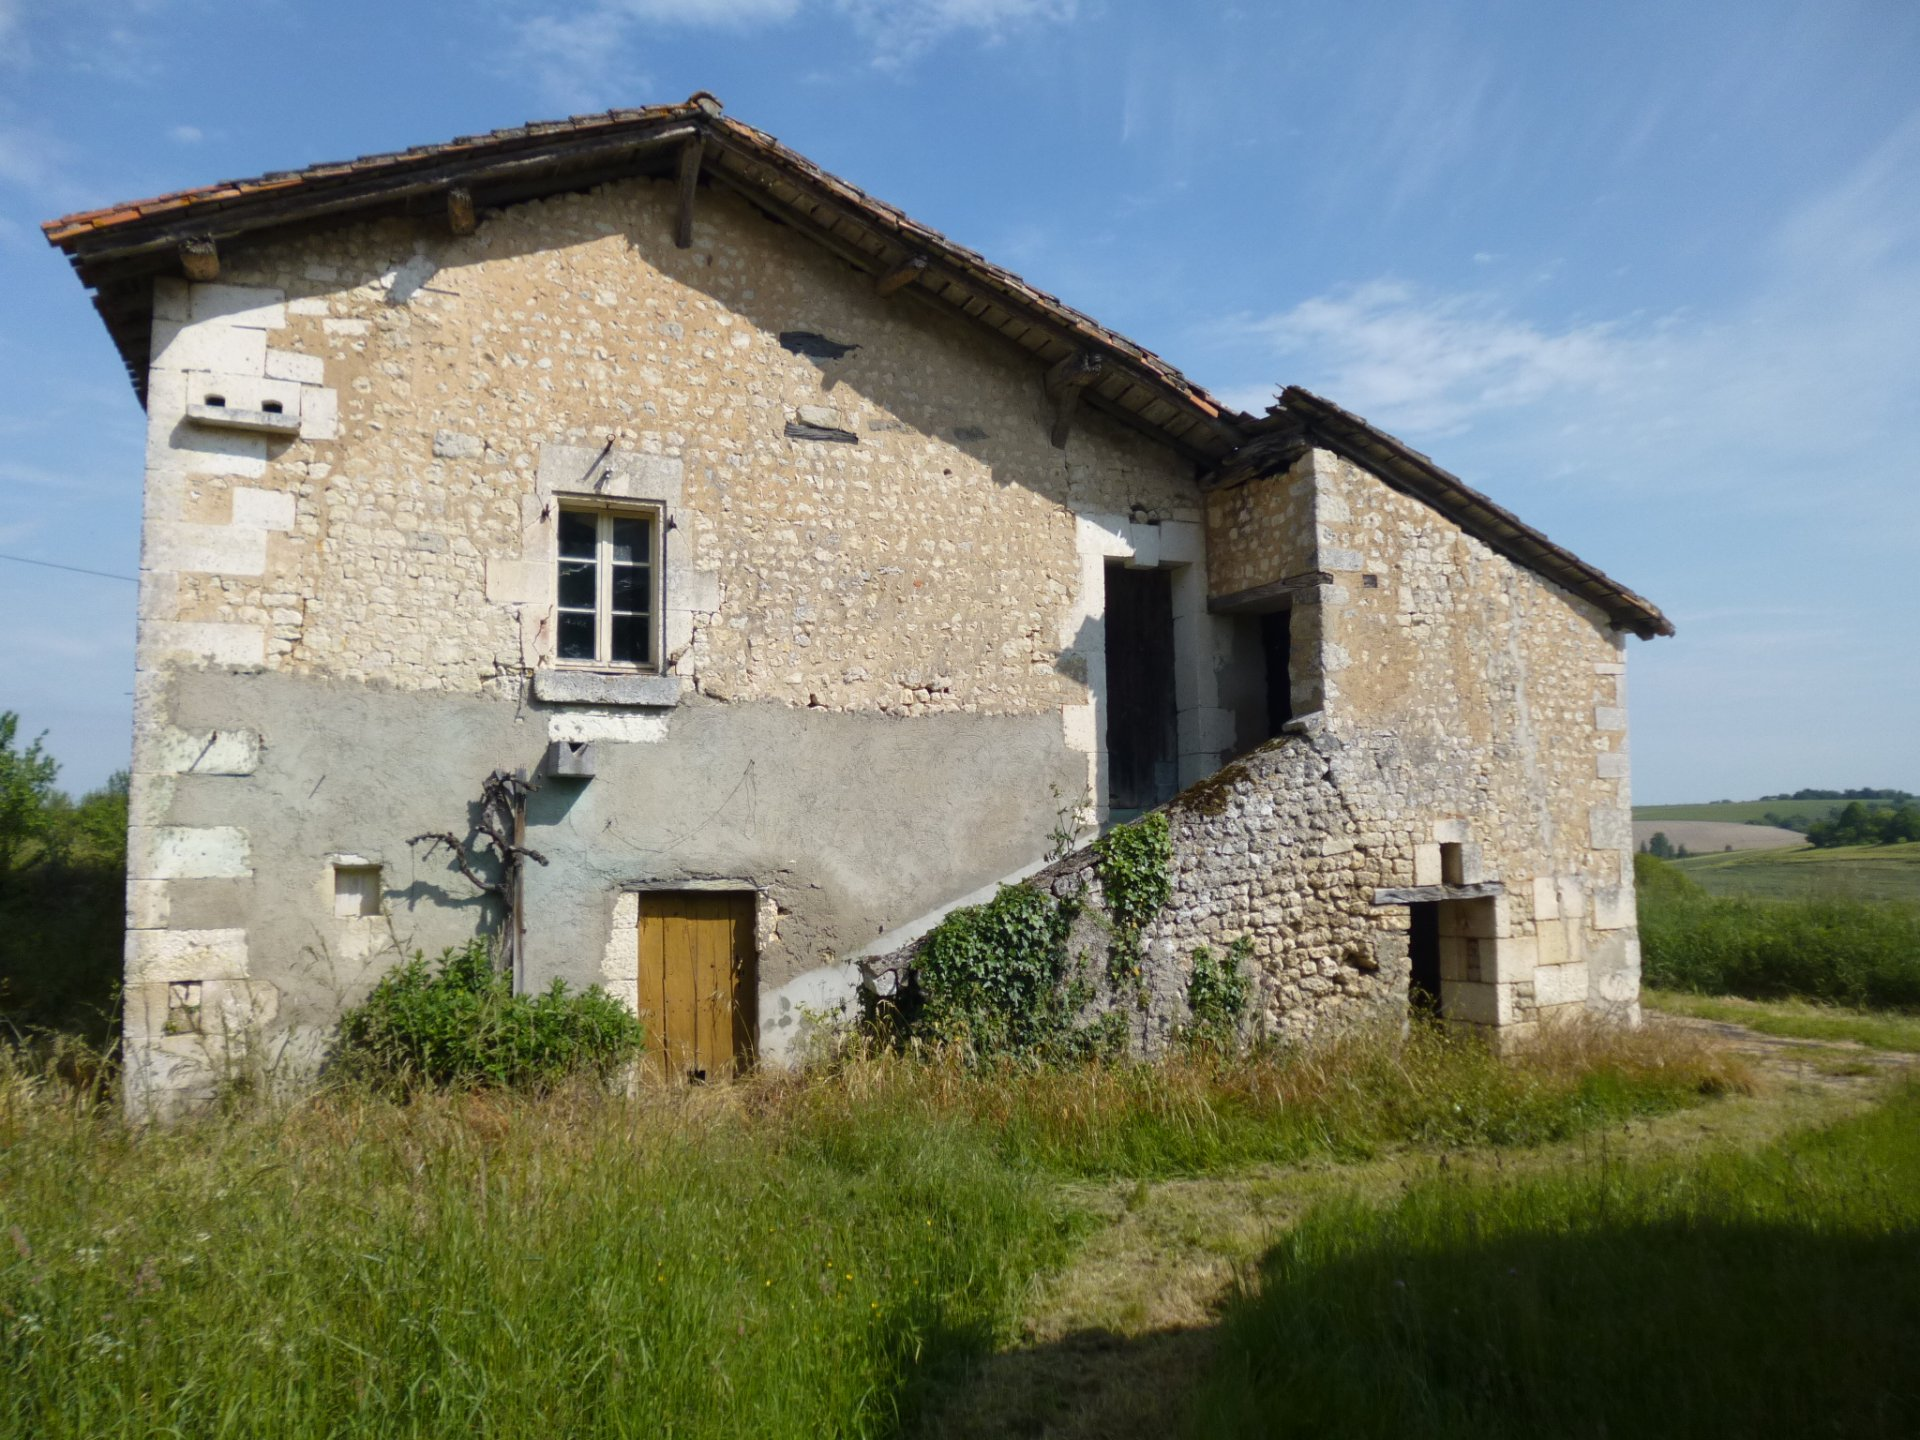 Charming old farm and barns for renovation project